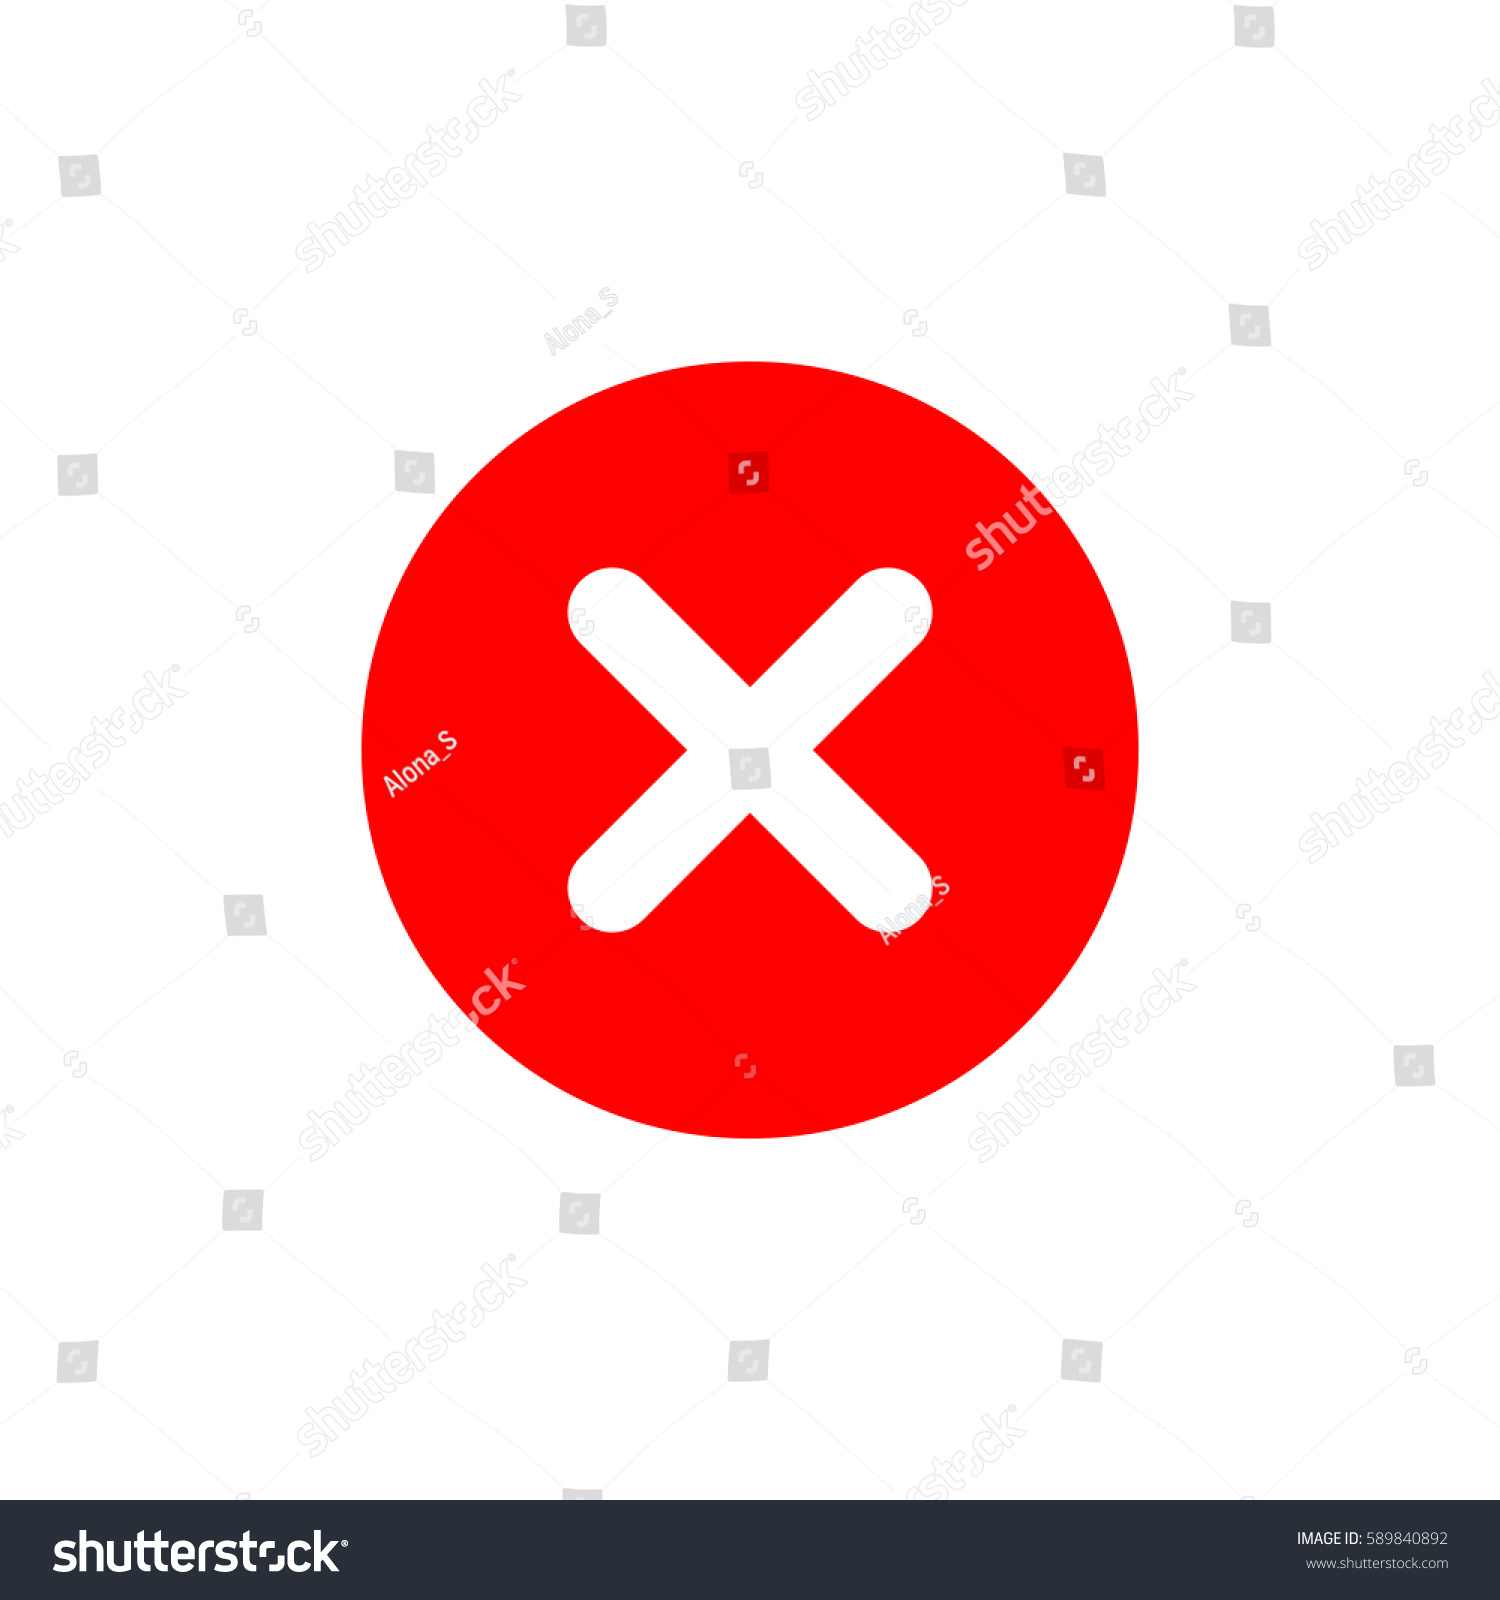 Cross Sign Element Red X Icon Stock Vector Royalty Free 589840892